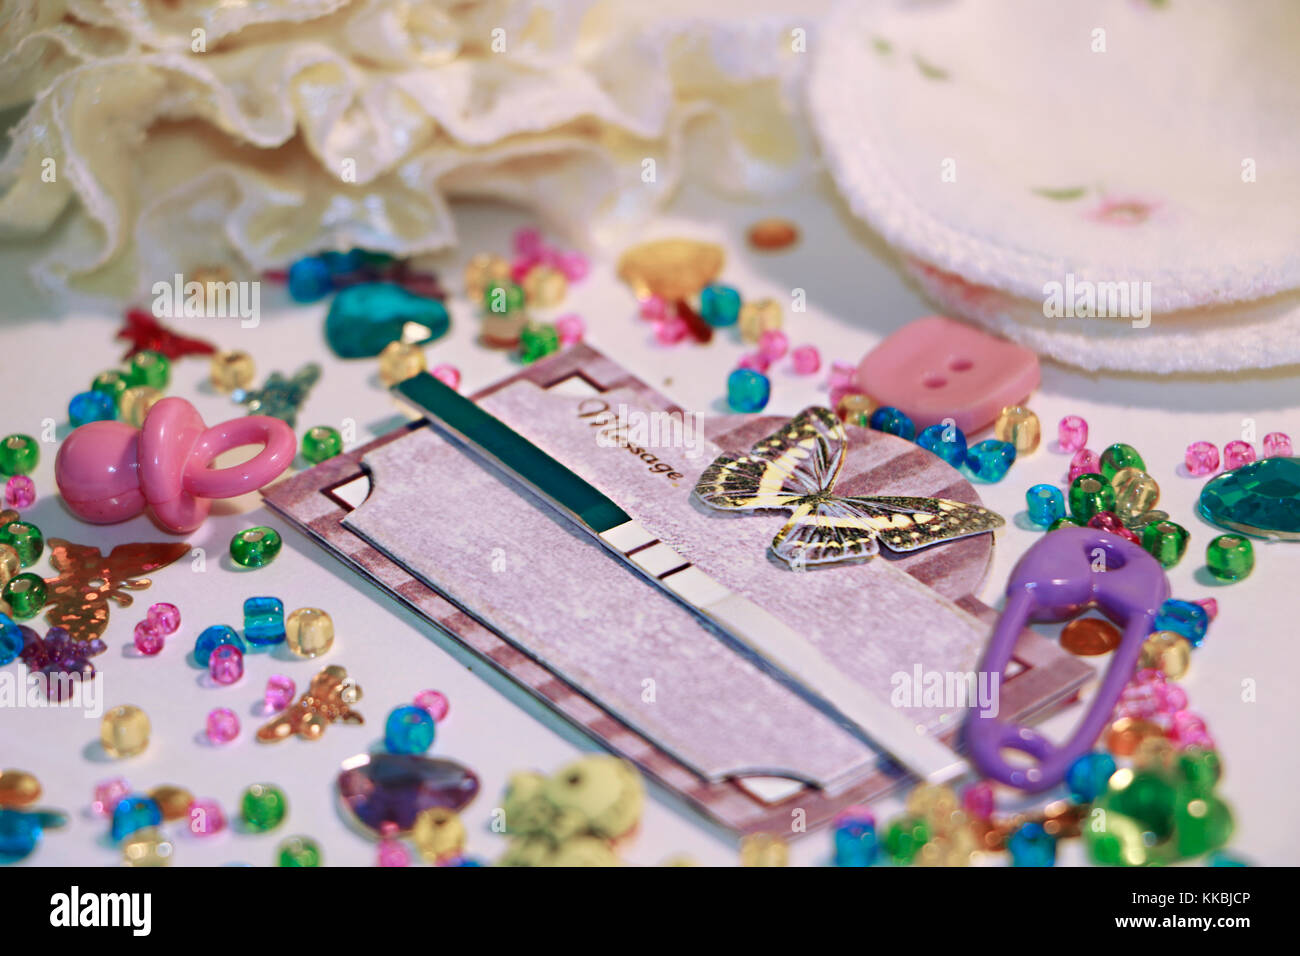 Positive pregnancy test in scrap book frame with butterfly,  cute baby accessories and spilled colored  seed beads - Stock Image